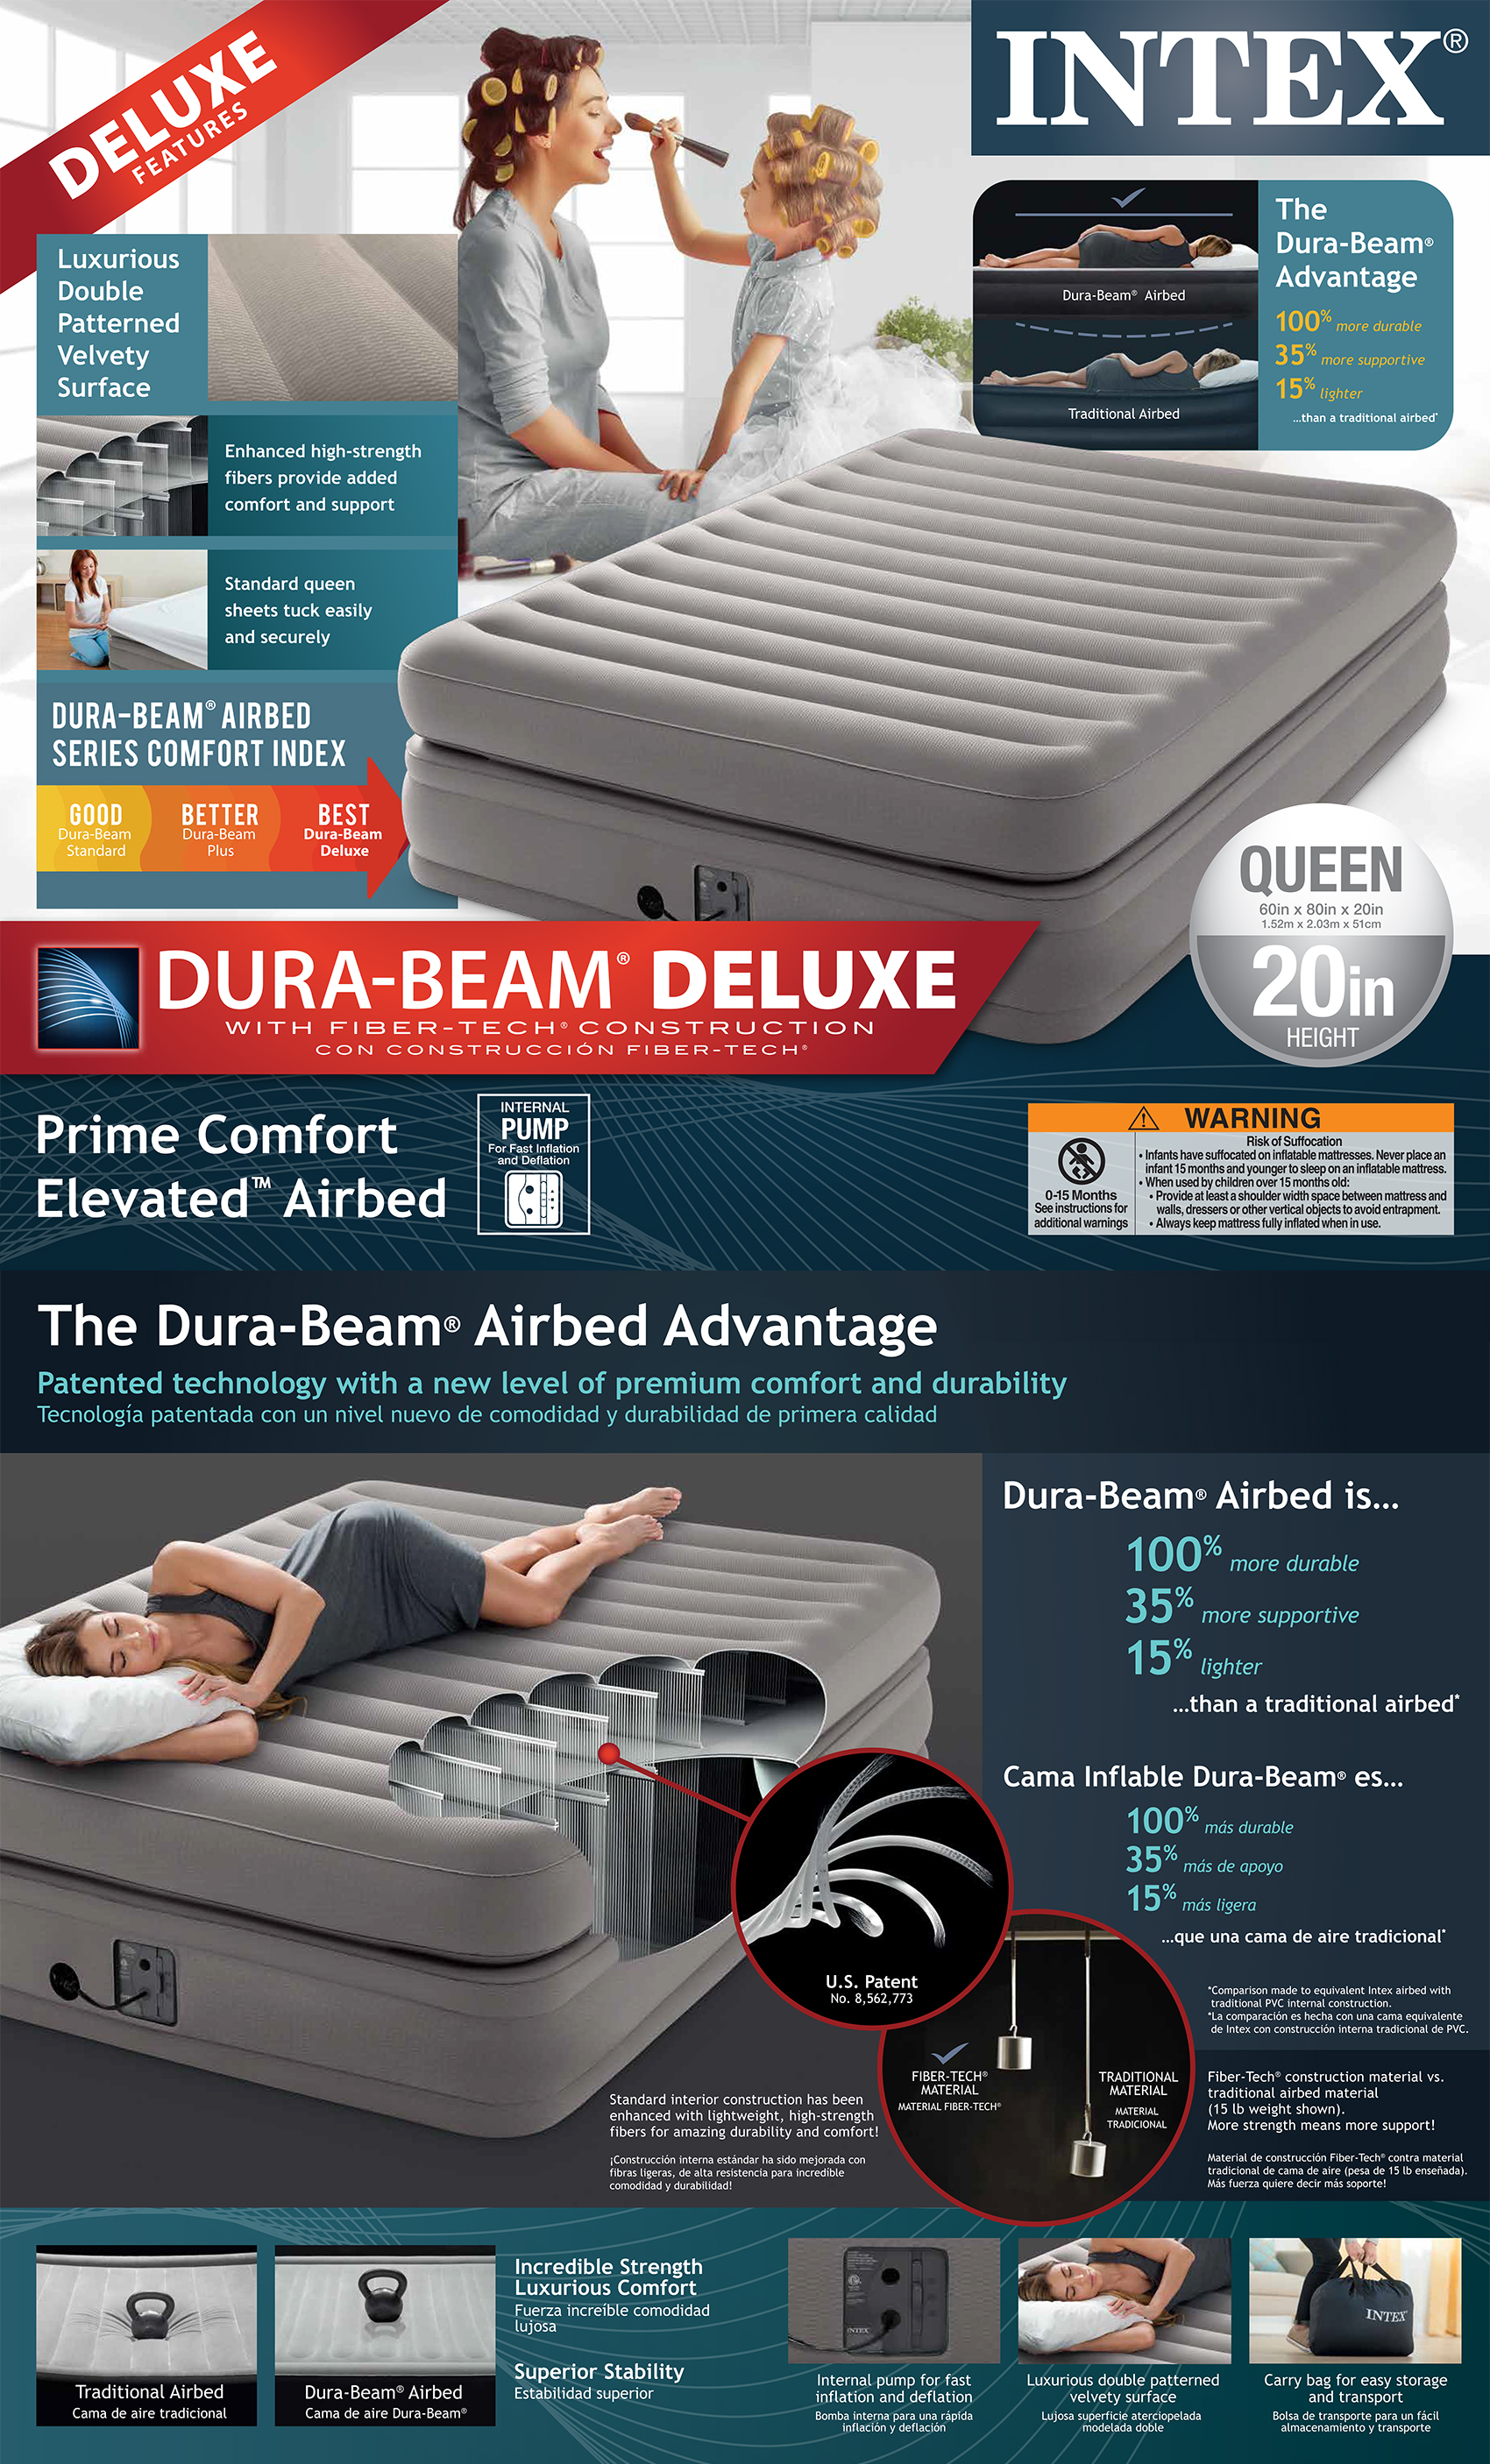 20in Queen Dura-Beam Prime Comfort Elevated Airbed with Internal Pump